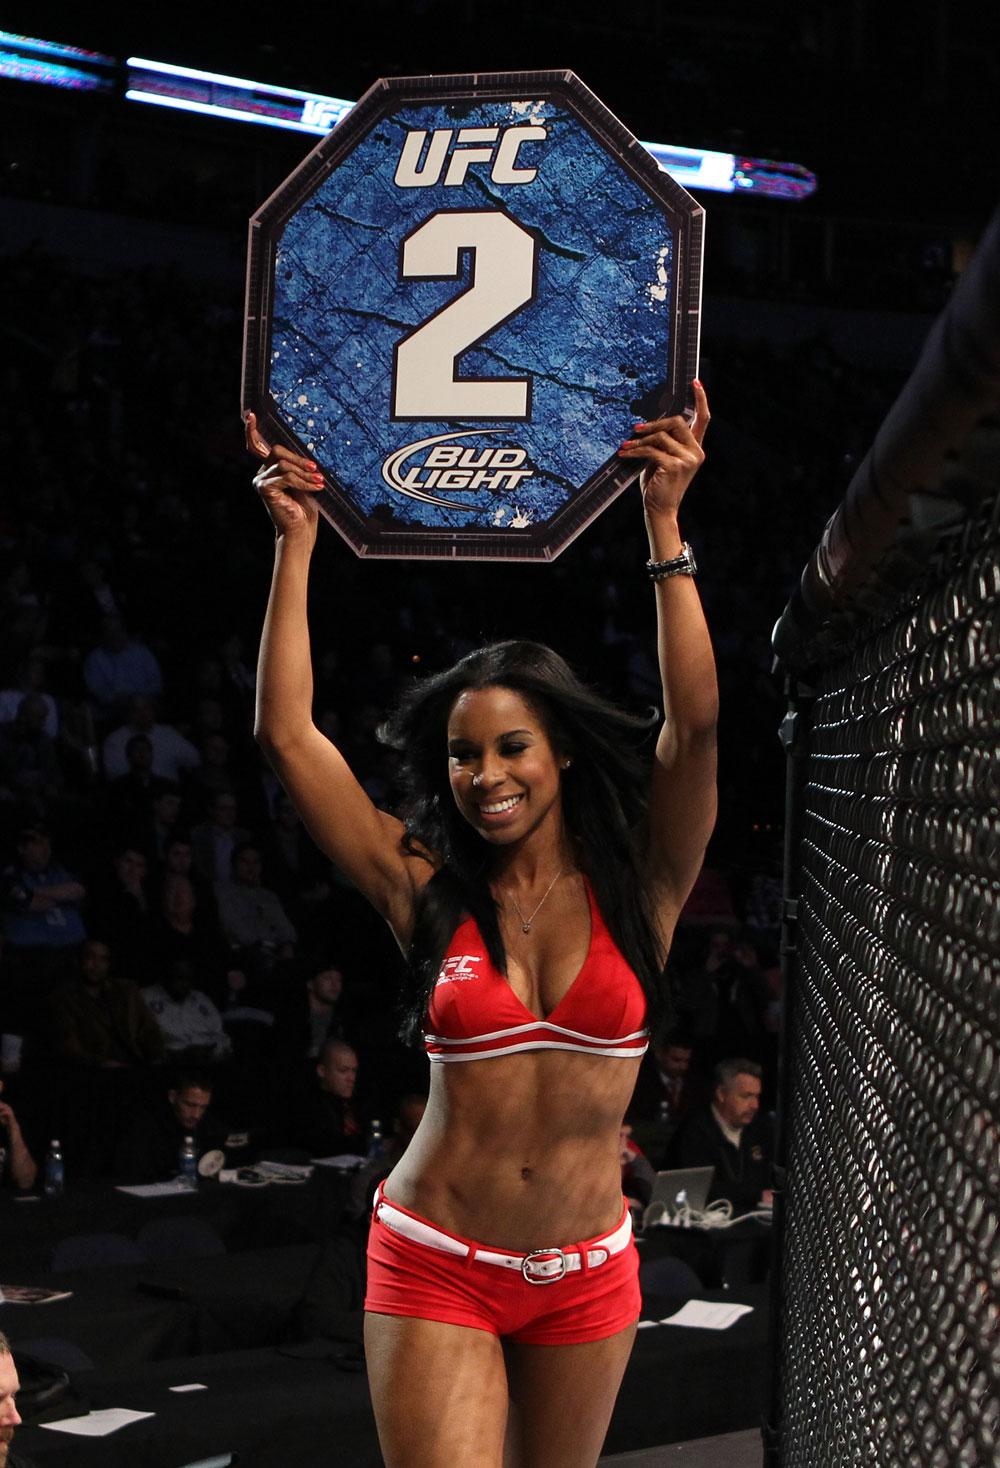 NASHVILLE, TN - JANUARY 20:  UFC Octagon Girl Chandella Powell introduces round two before the Brenneman vs Roberts bout during the UFC on FX event at Bridgestone Arena on January 20, 2012 in Nashville, Tennessee.  (Photo by Josh Hedges/Zuffa LLC/Zuffa LLC via Getty Images)